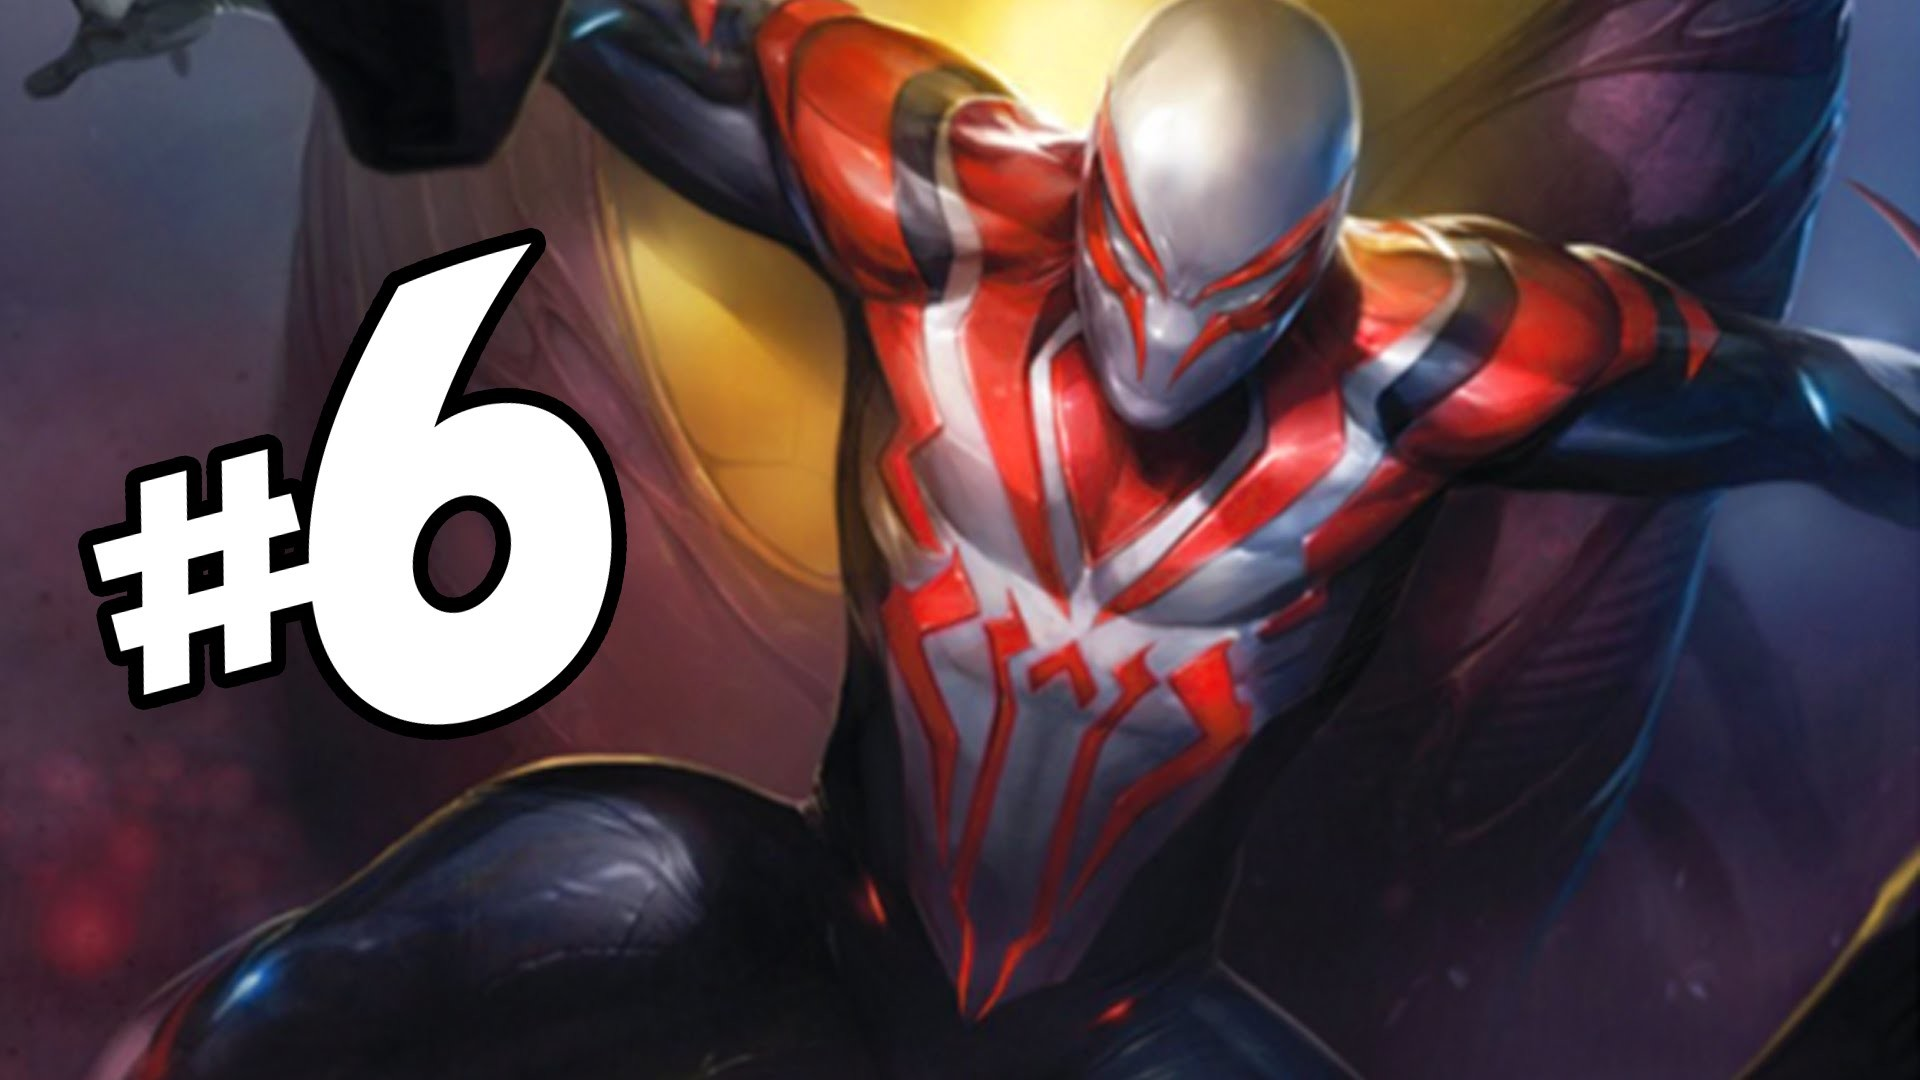 Spider-Man 2099 (All-New All-Different) Issue #6 Full Comic Review! (2016)  – YouTube